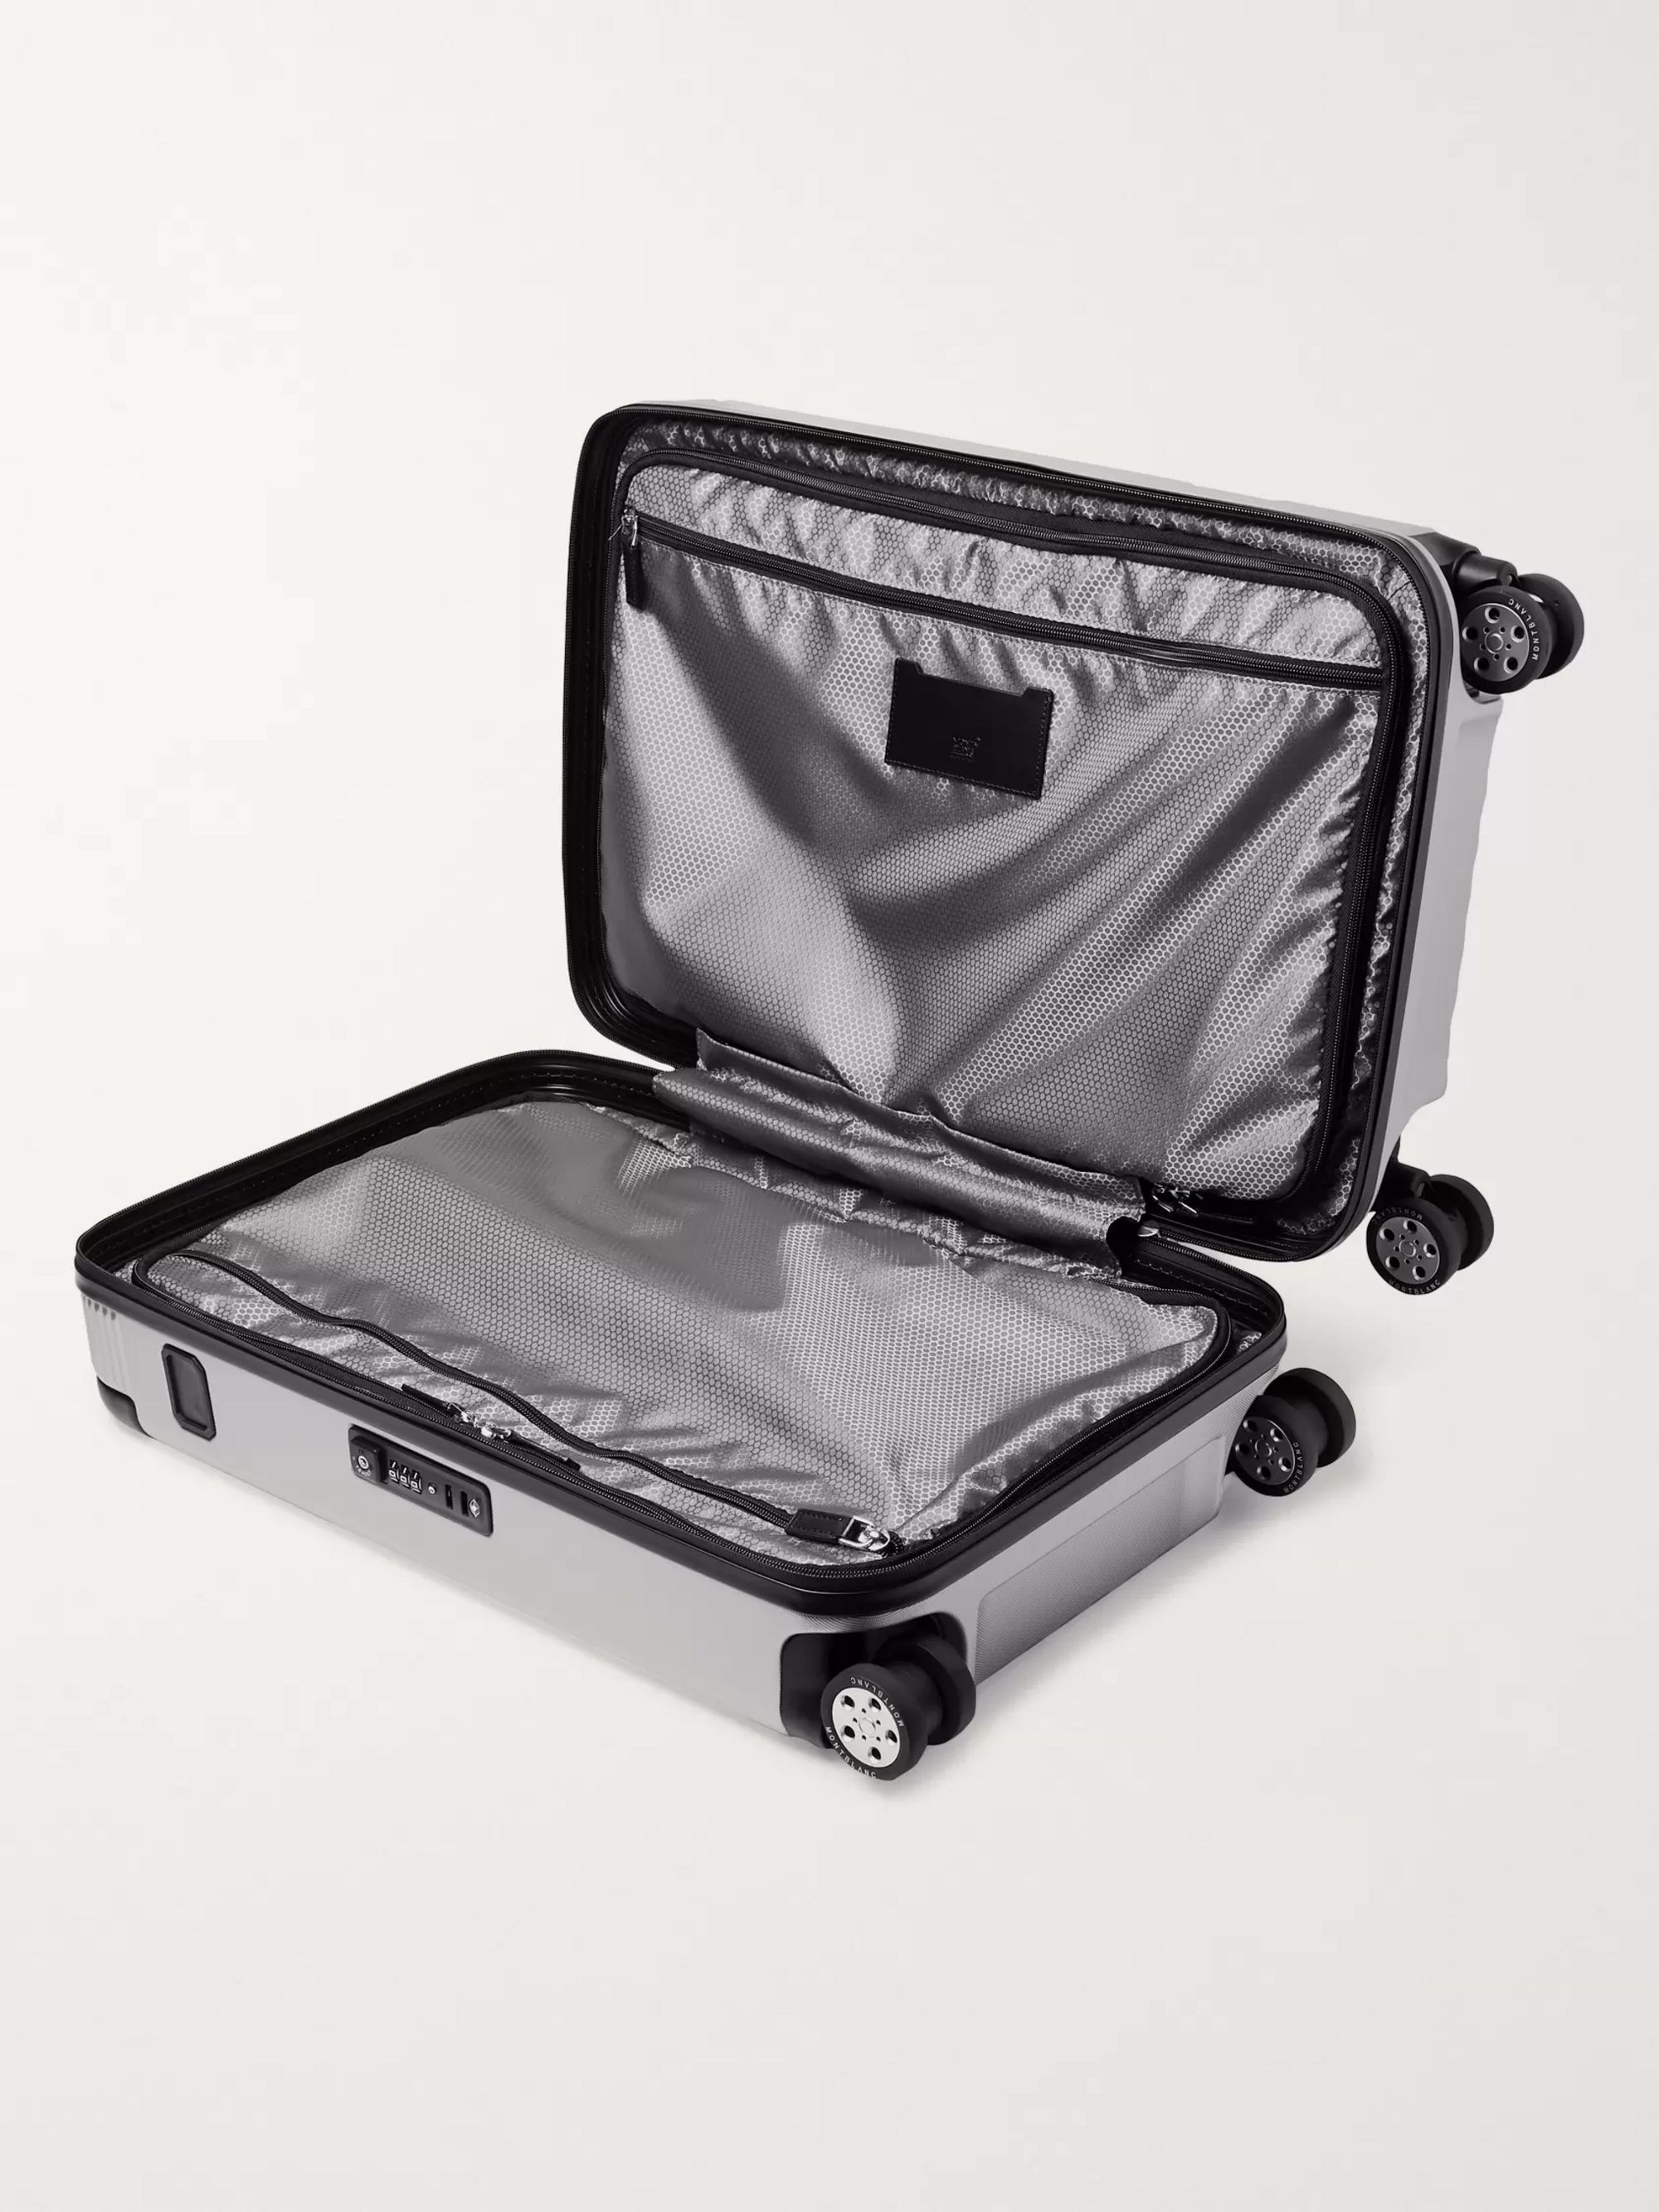 Montblanc #MY4810 Cabin Compact 55cm Leather-Trimmed Polycarbonate Suitcase